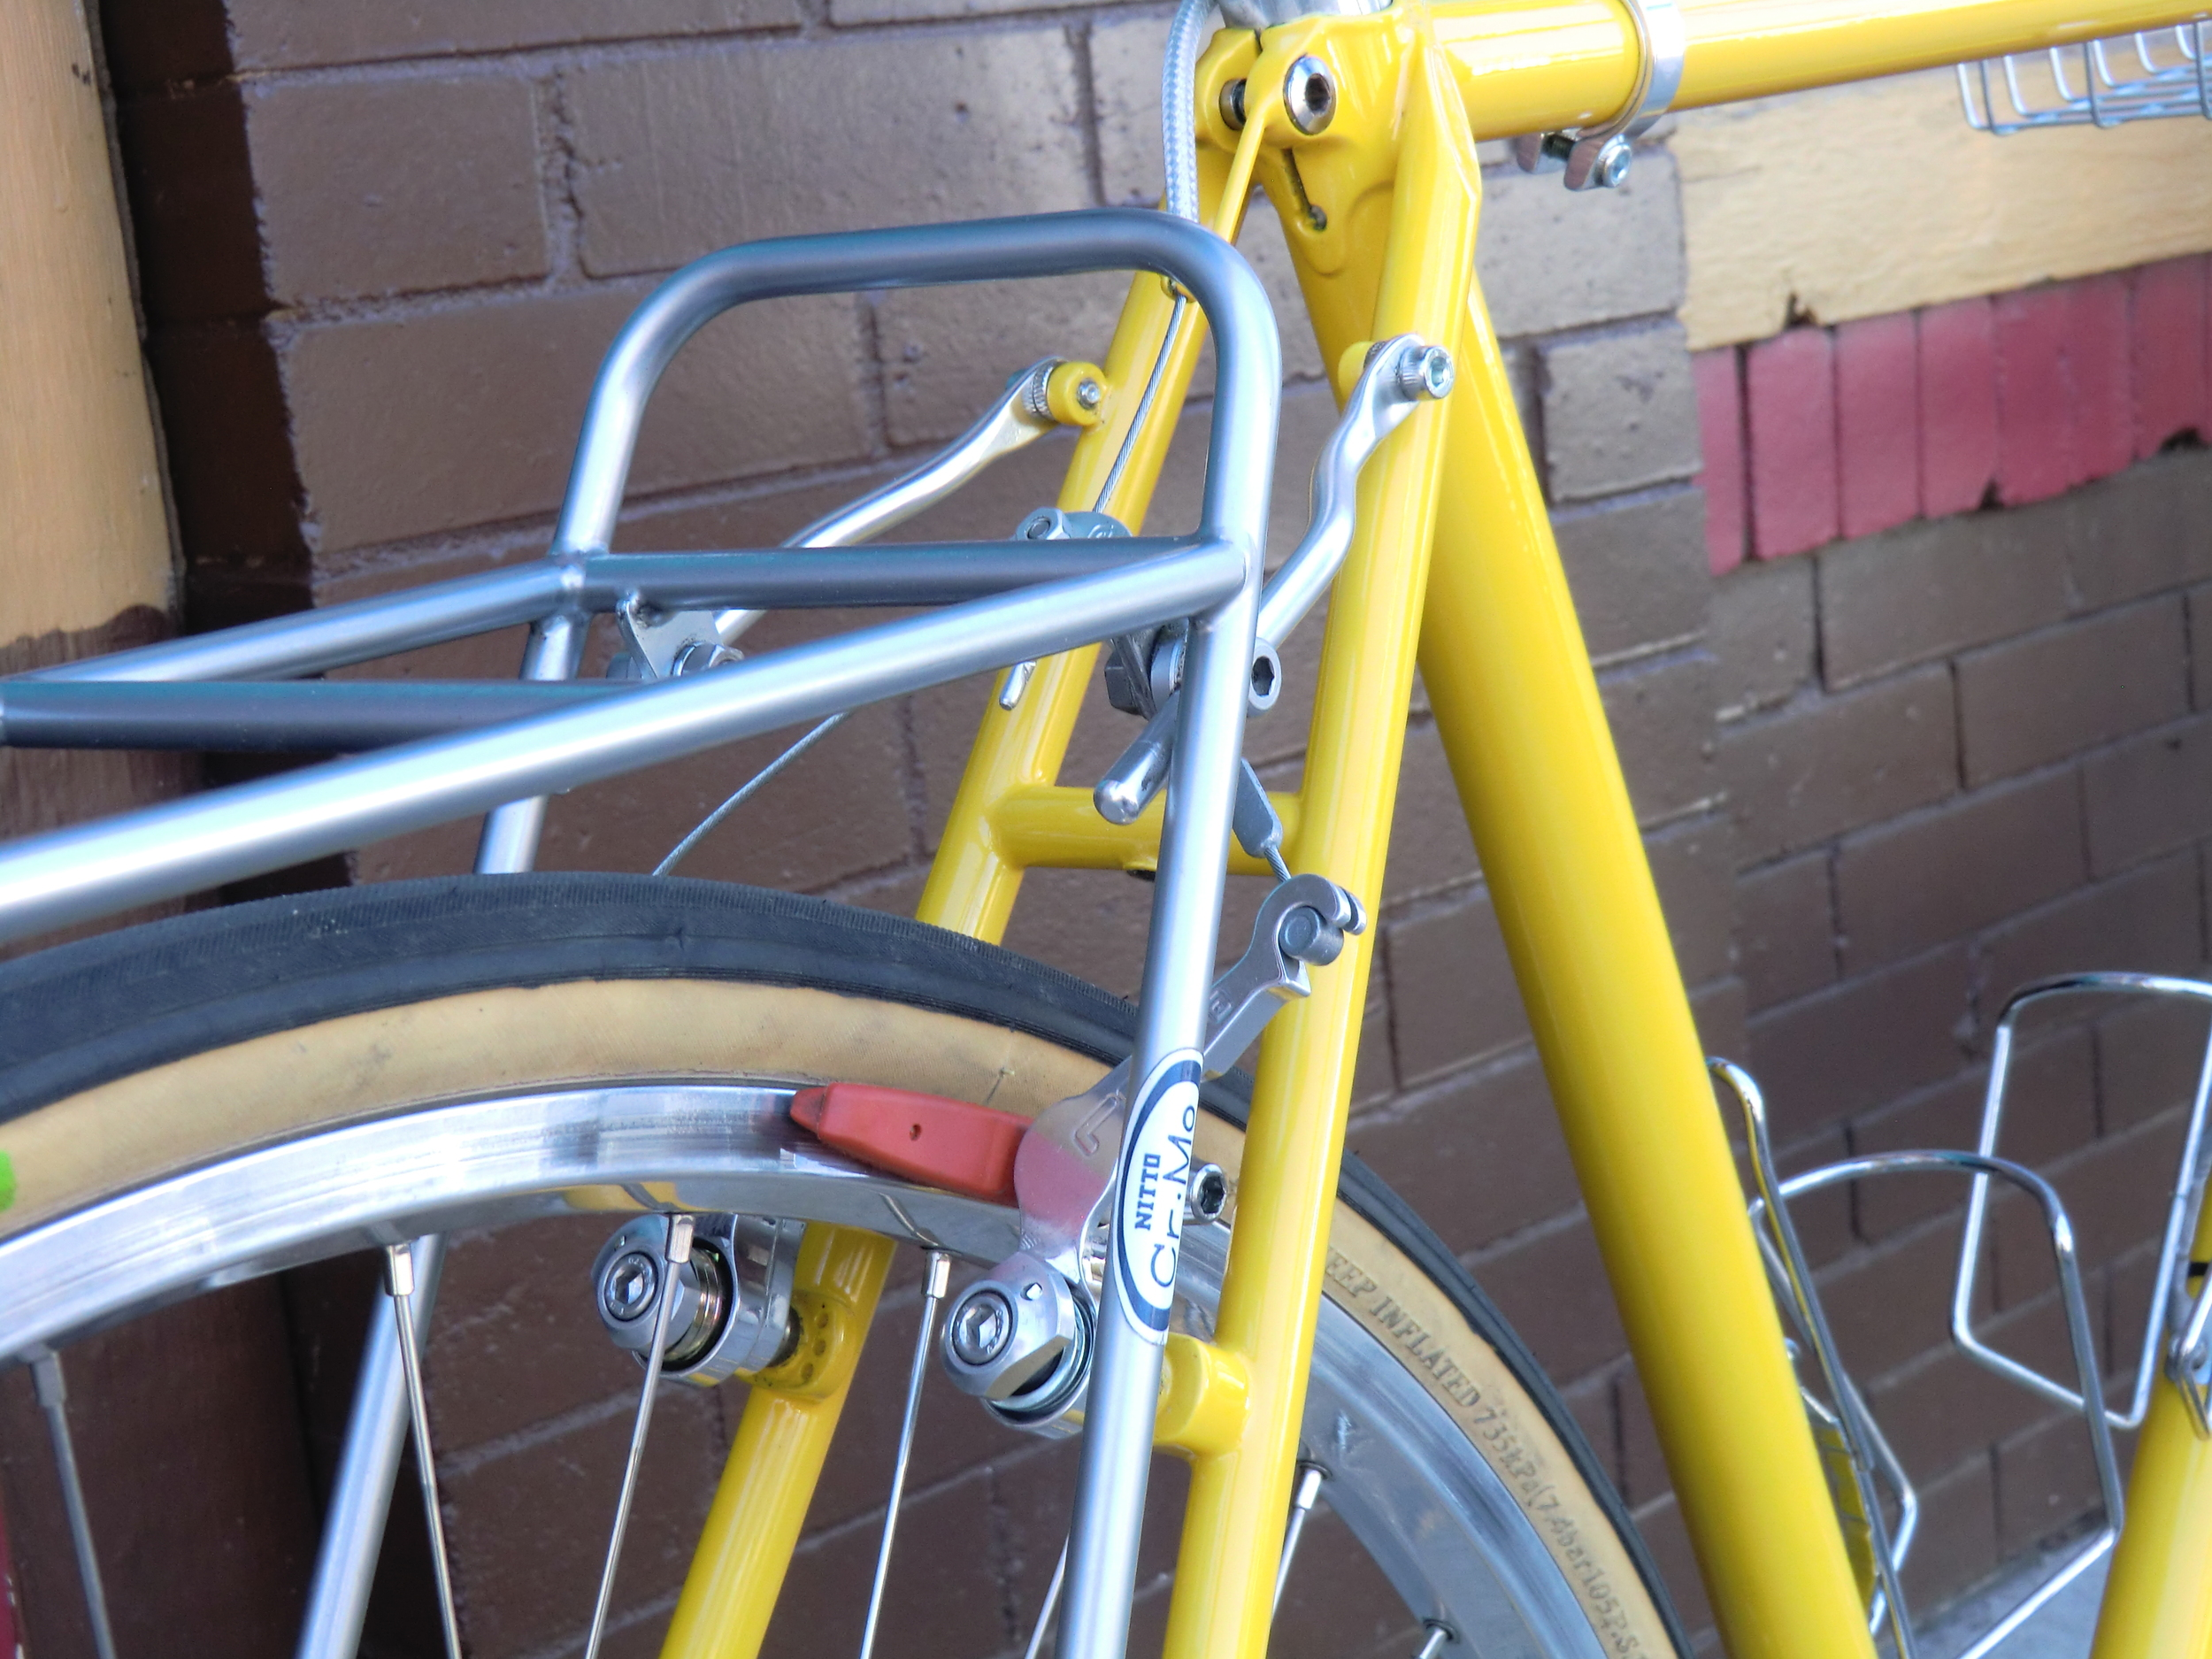 Another NITTO rear rack, ChroMoly